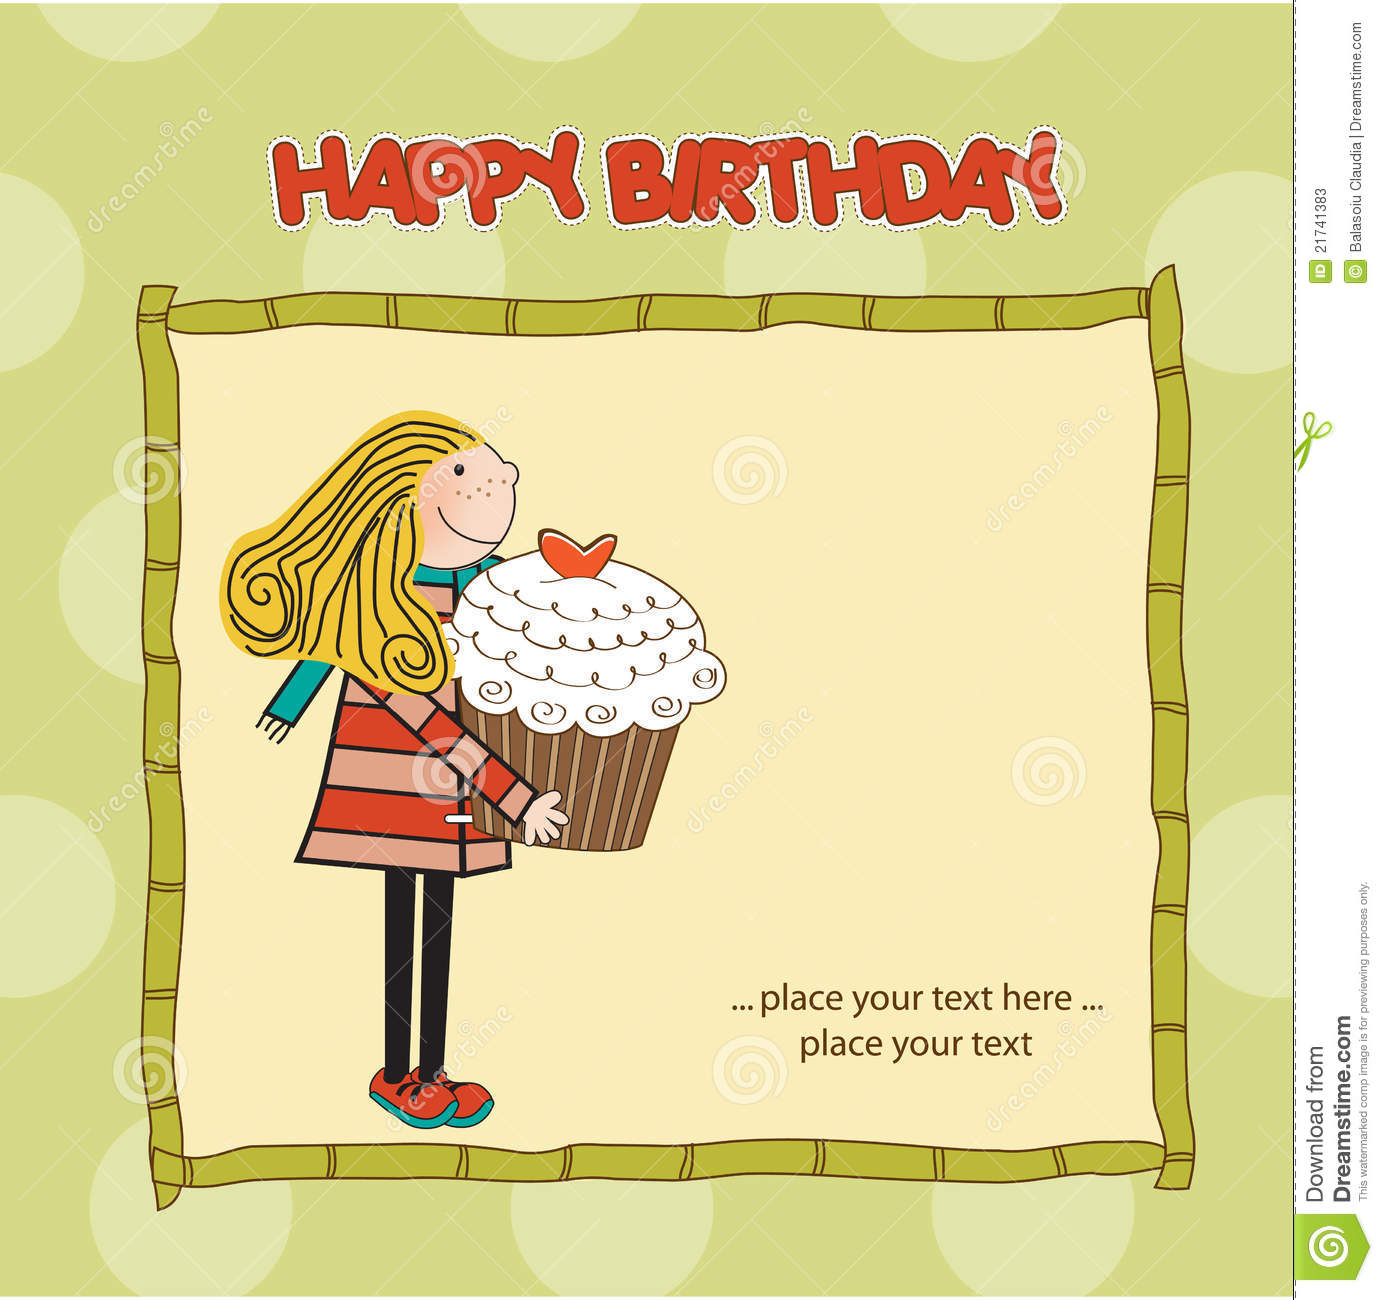 Appy Birthday Card With Cute Girl And Cupcake Stock Photos Image 21741383